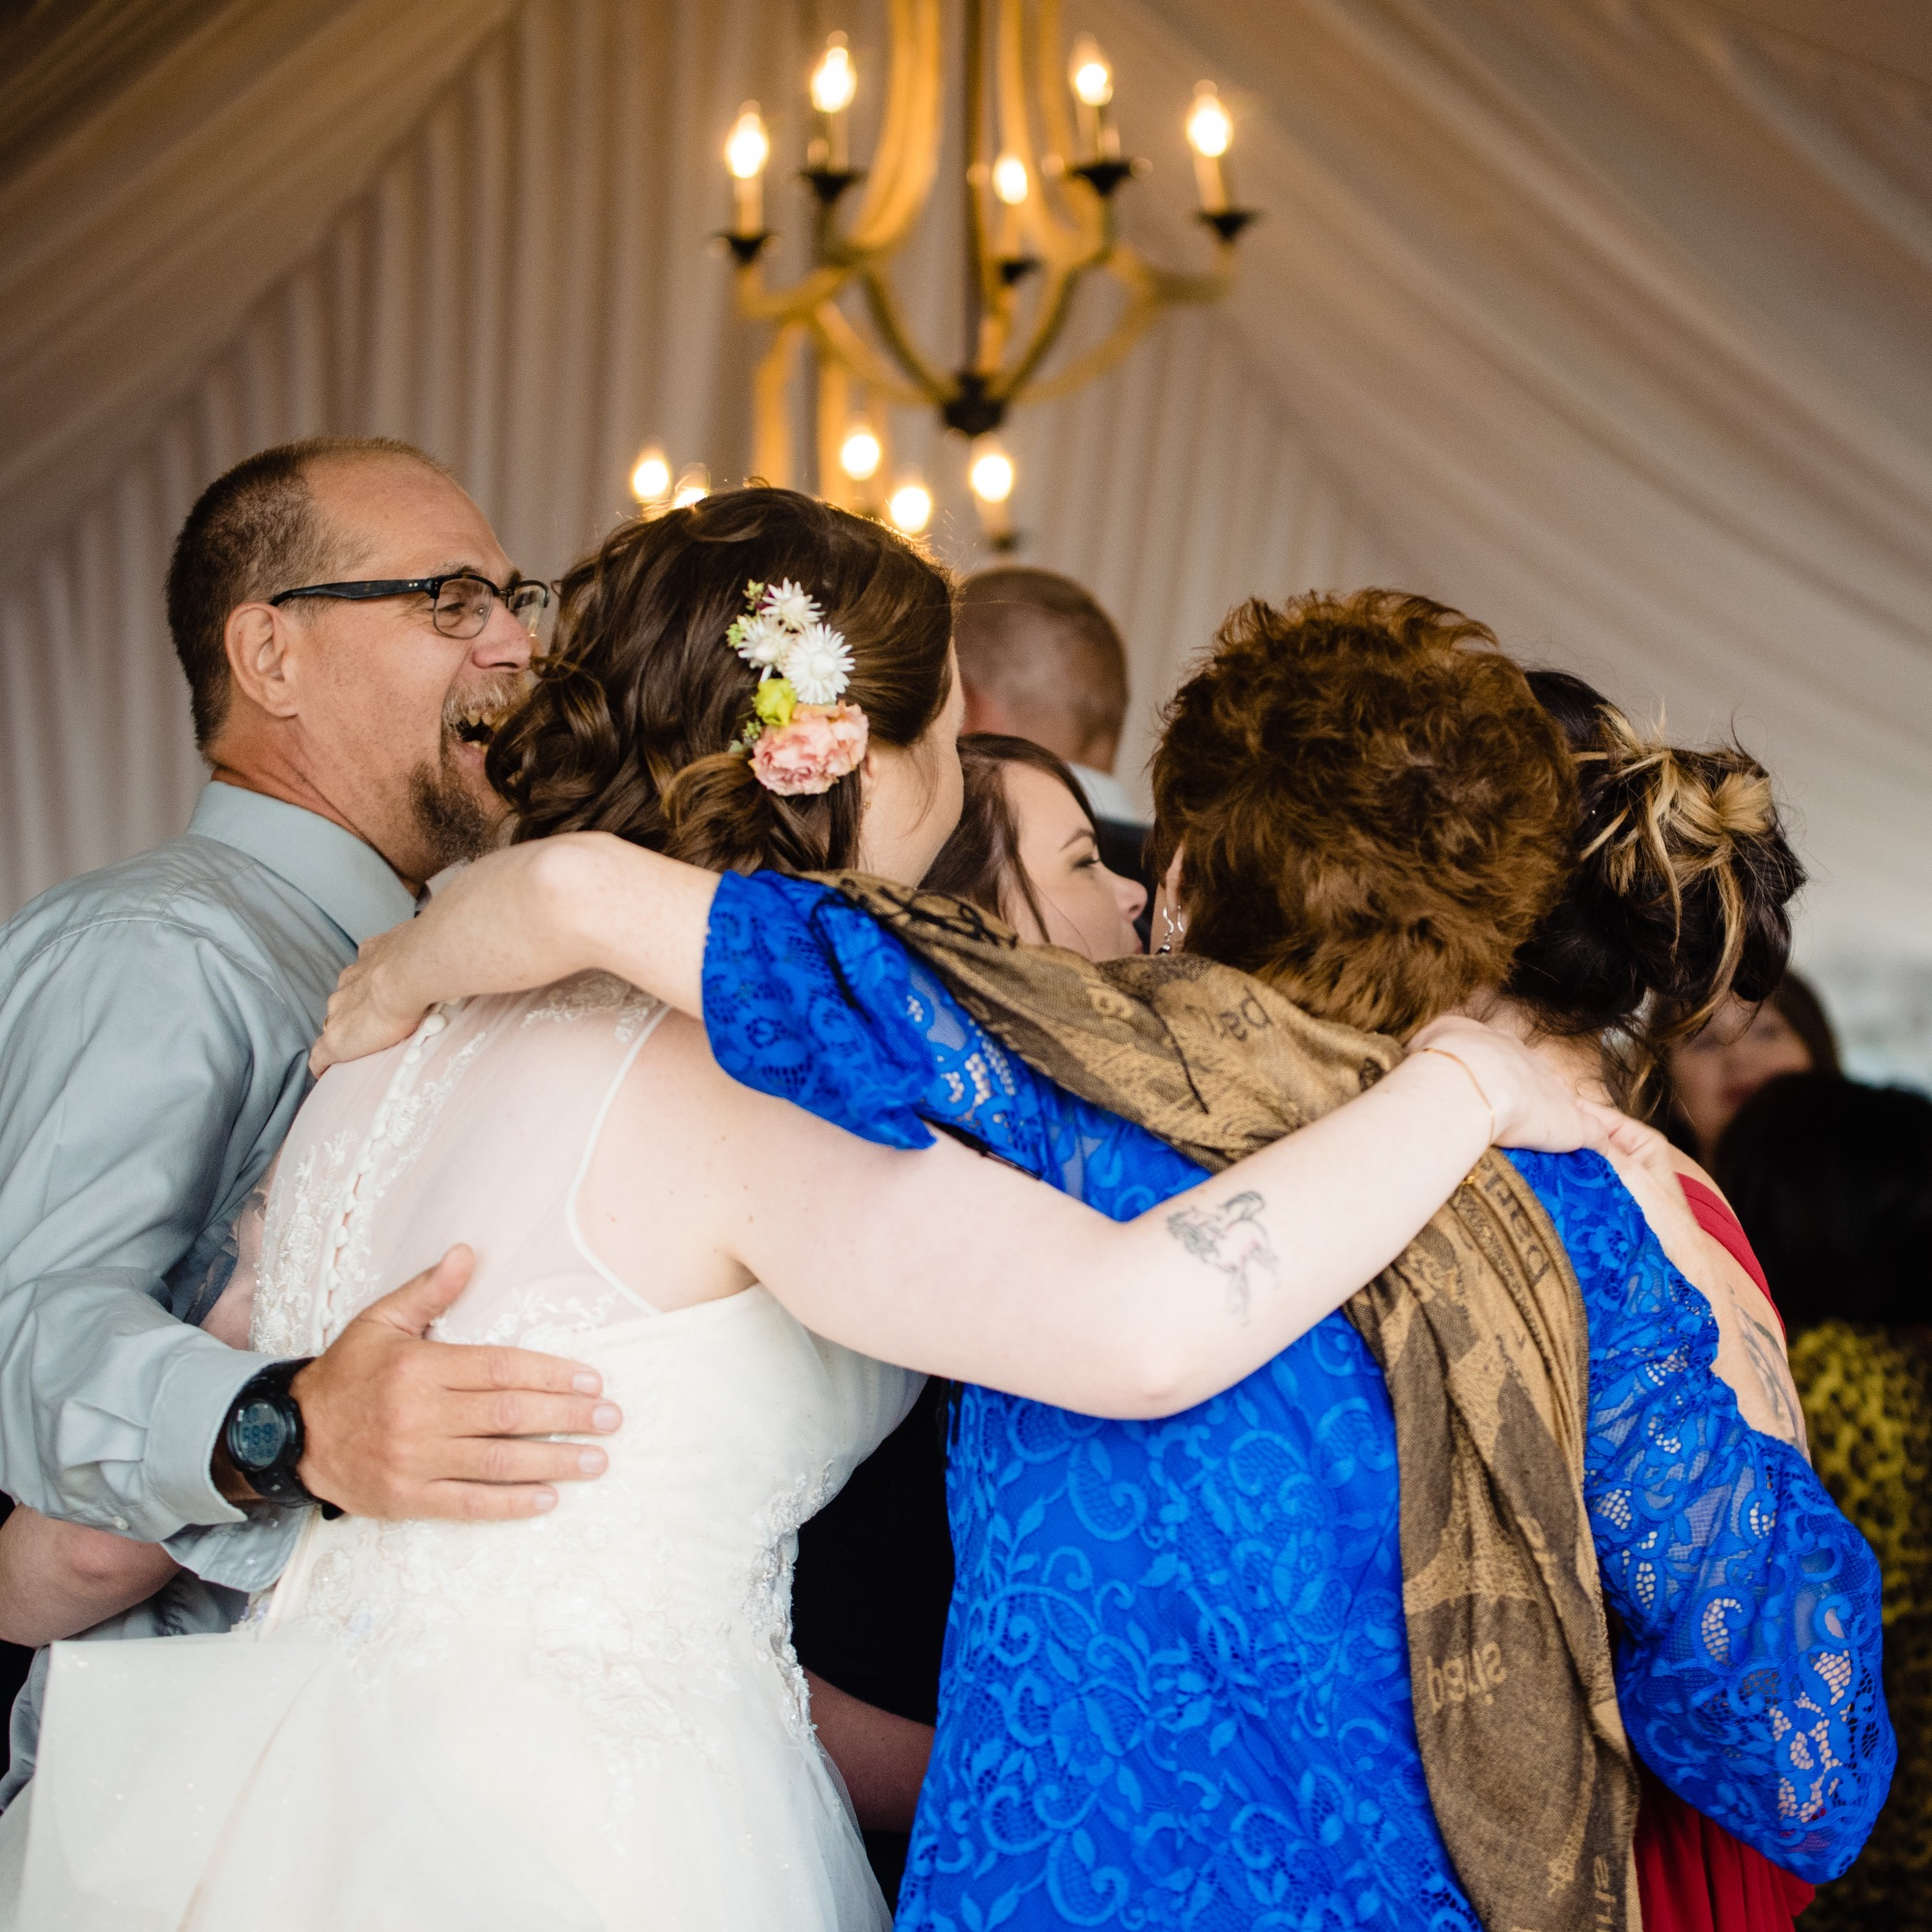 lindseyjanephoto_wedding0121.jpg